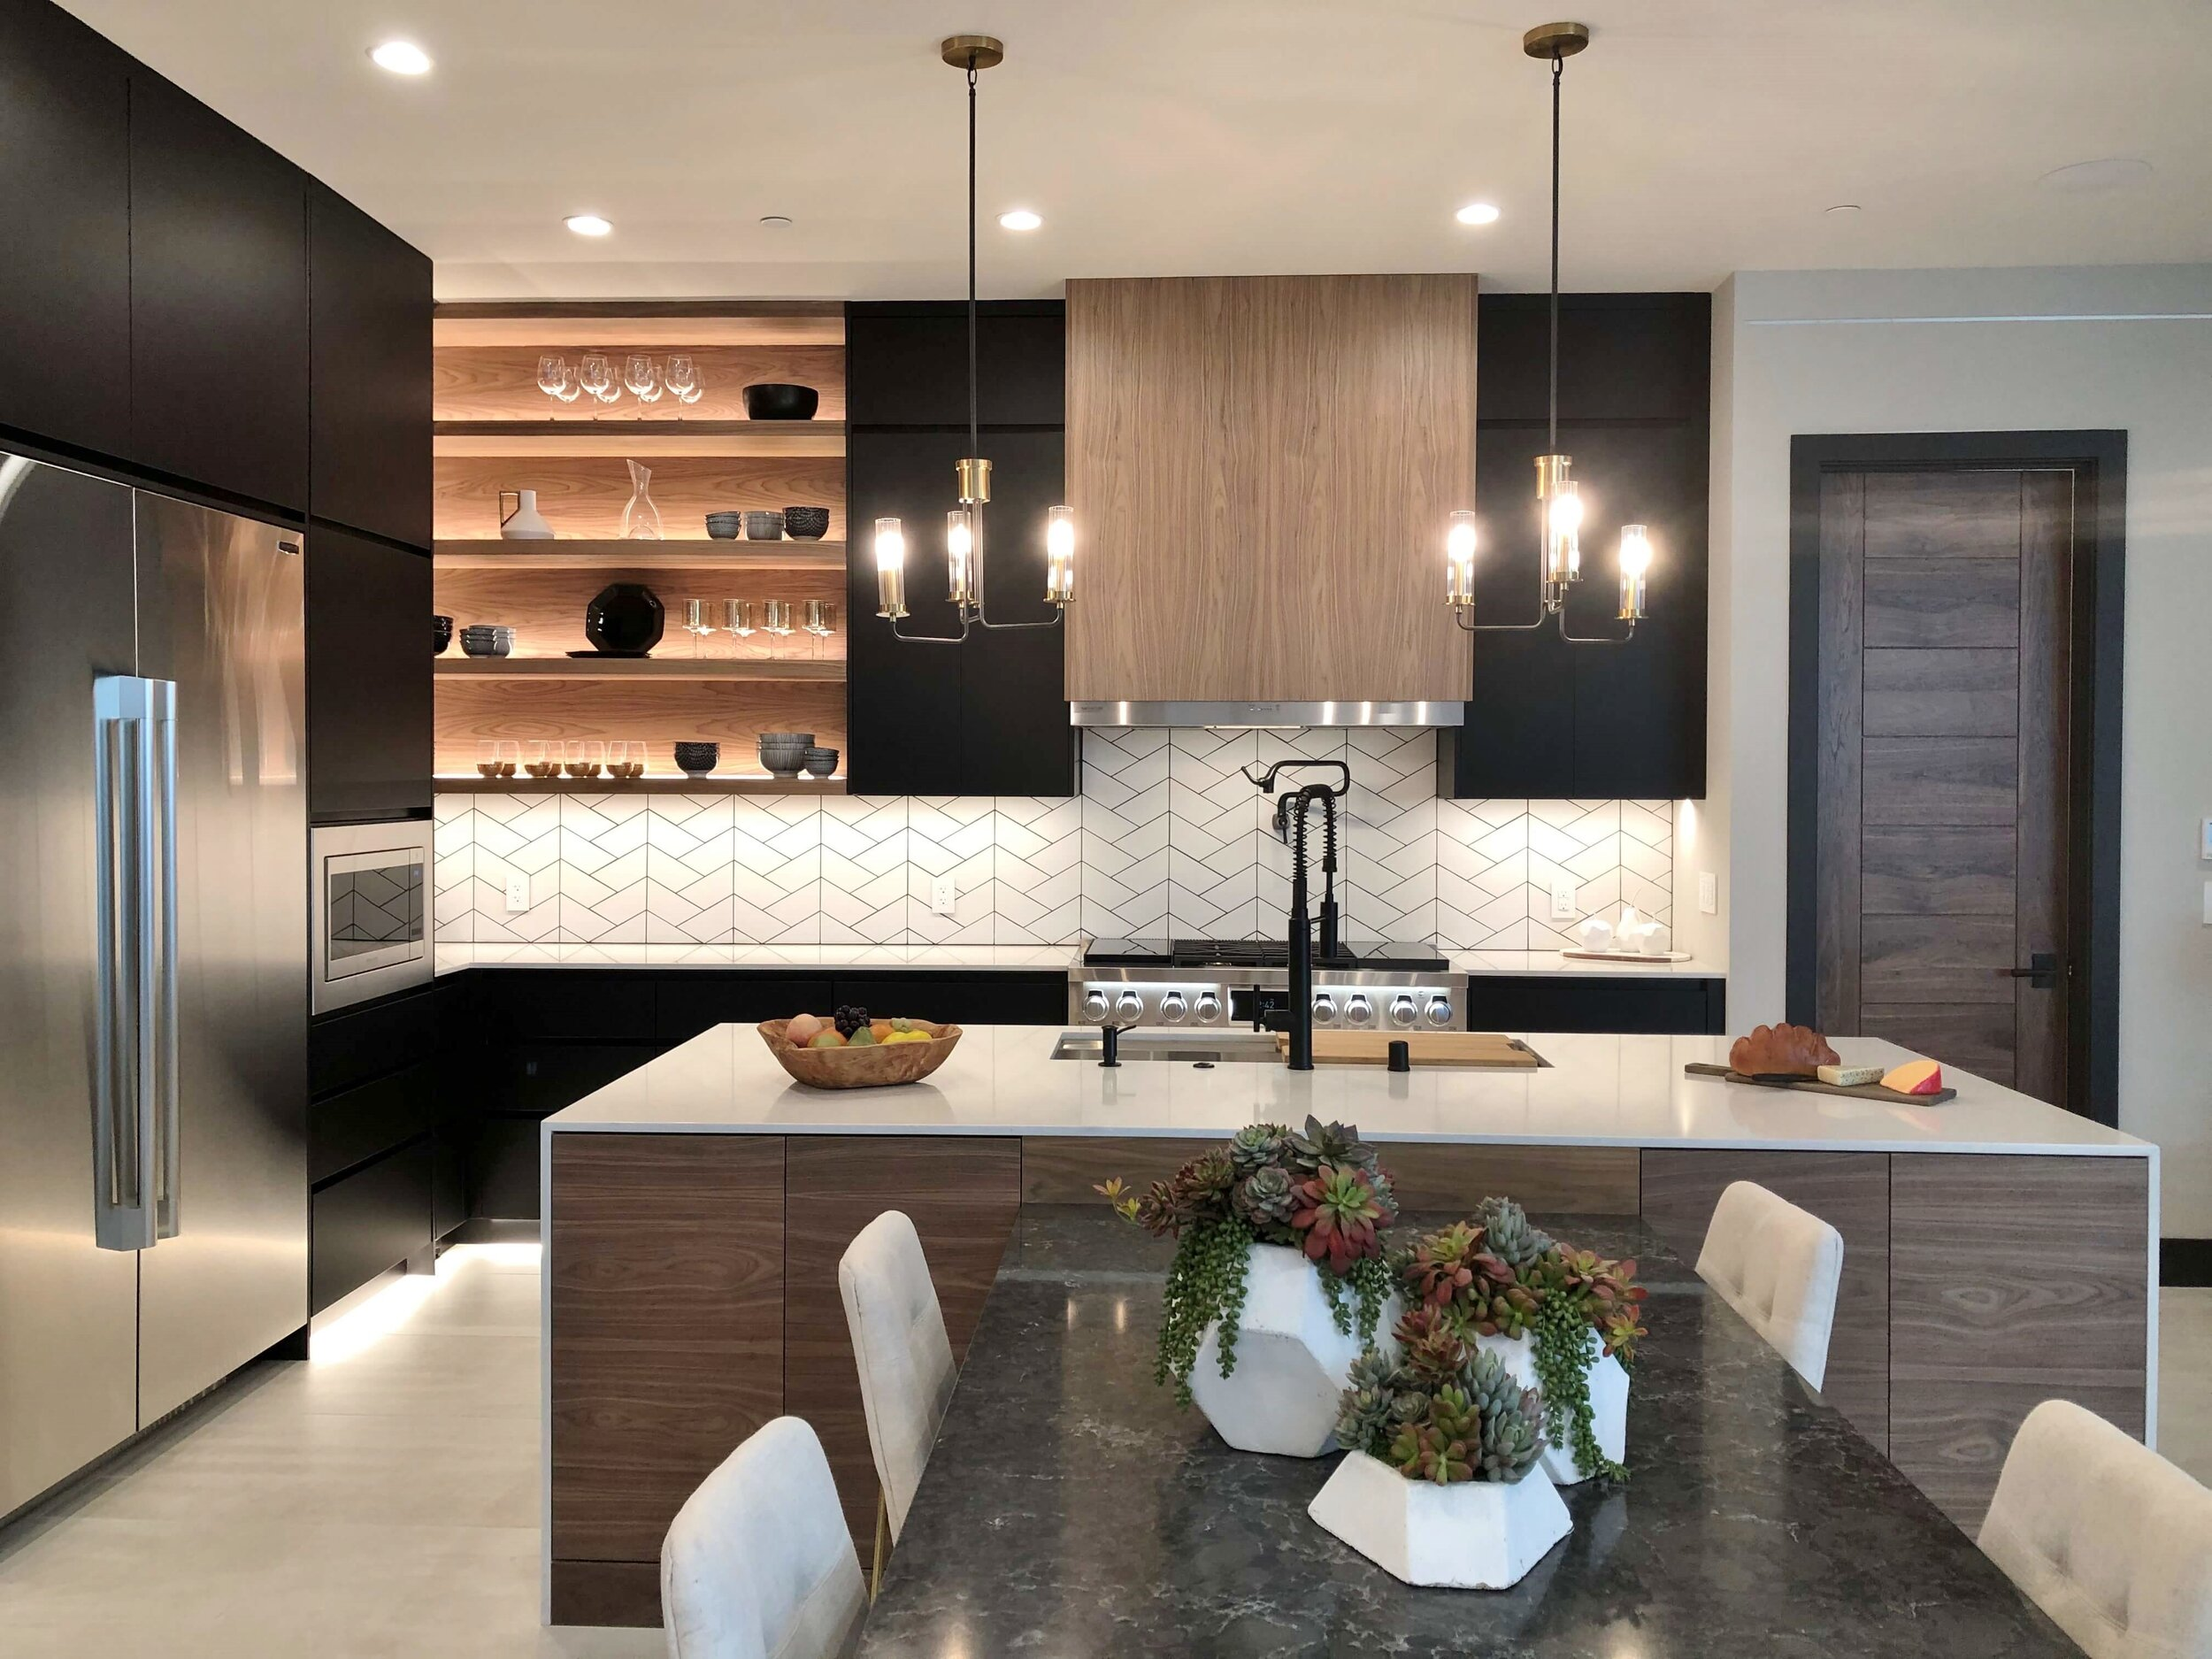 The New American Remodel Home Tour 2020 A Sophisticated Modern Home Designed